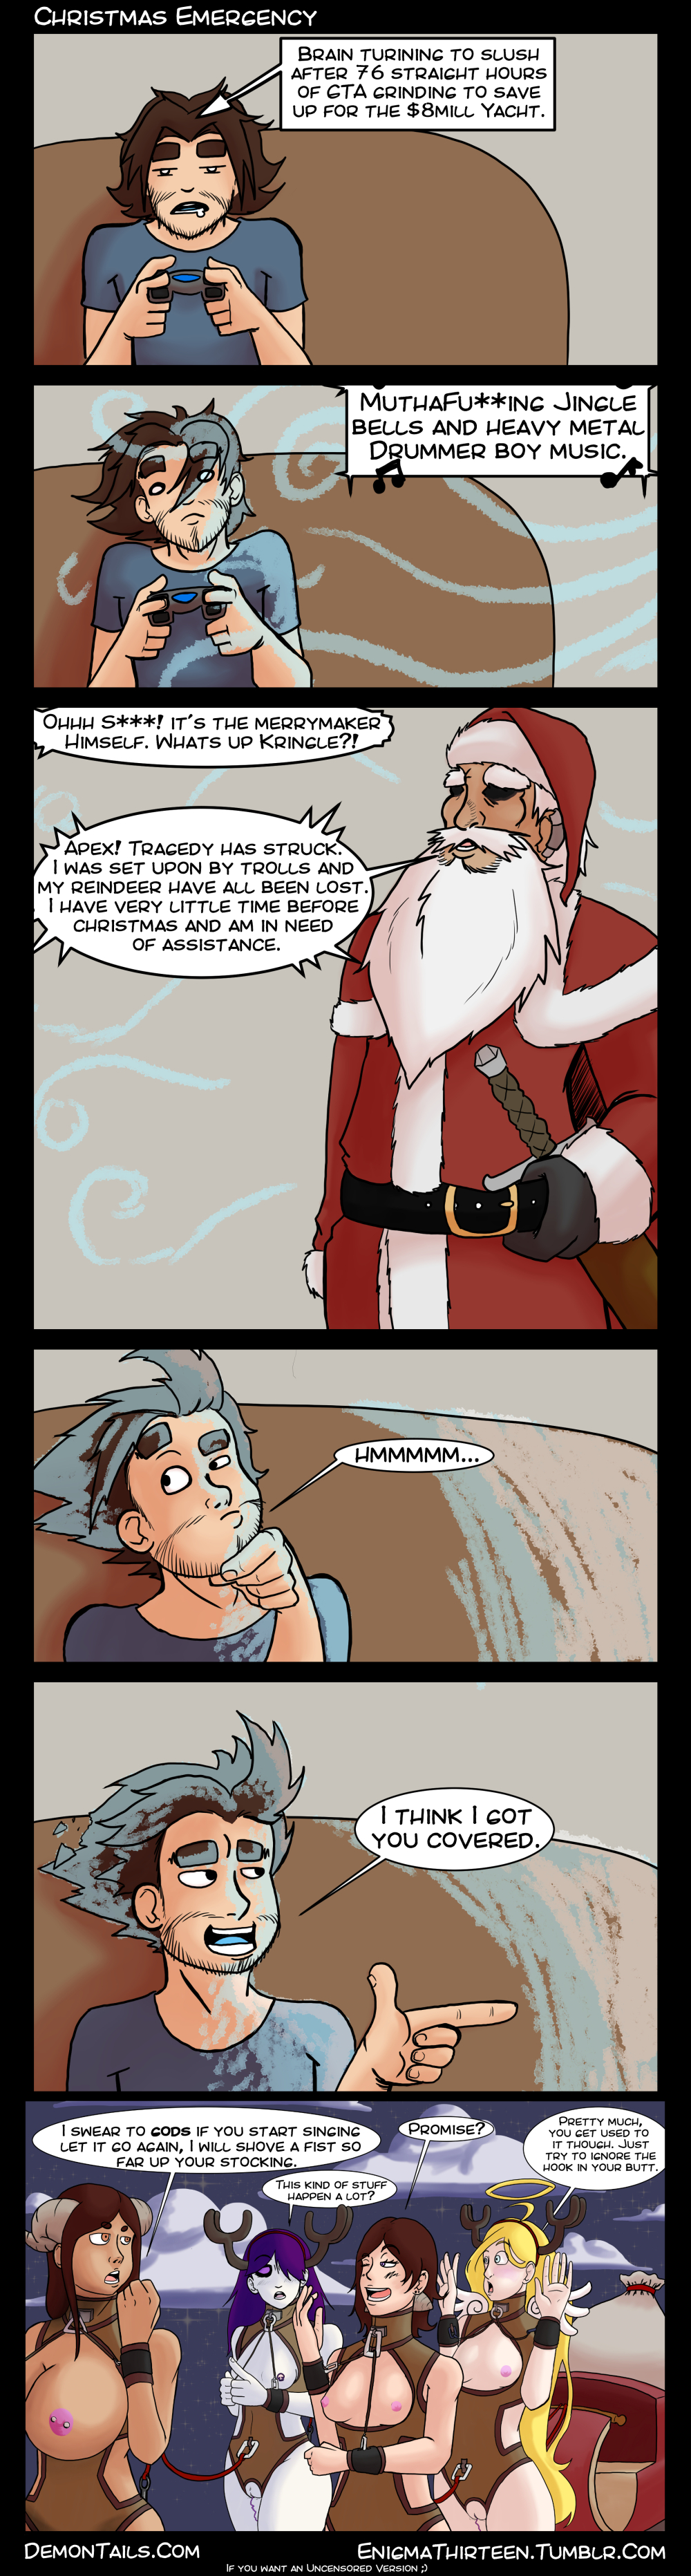 Christmas Emergency (NSFW)